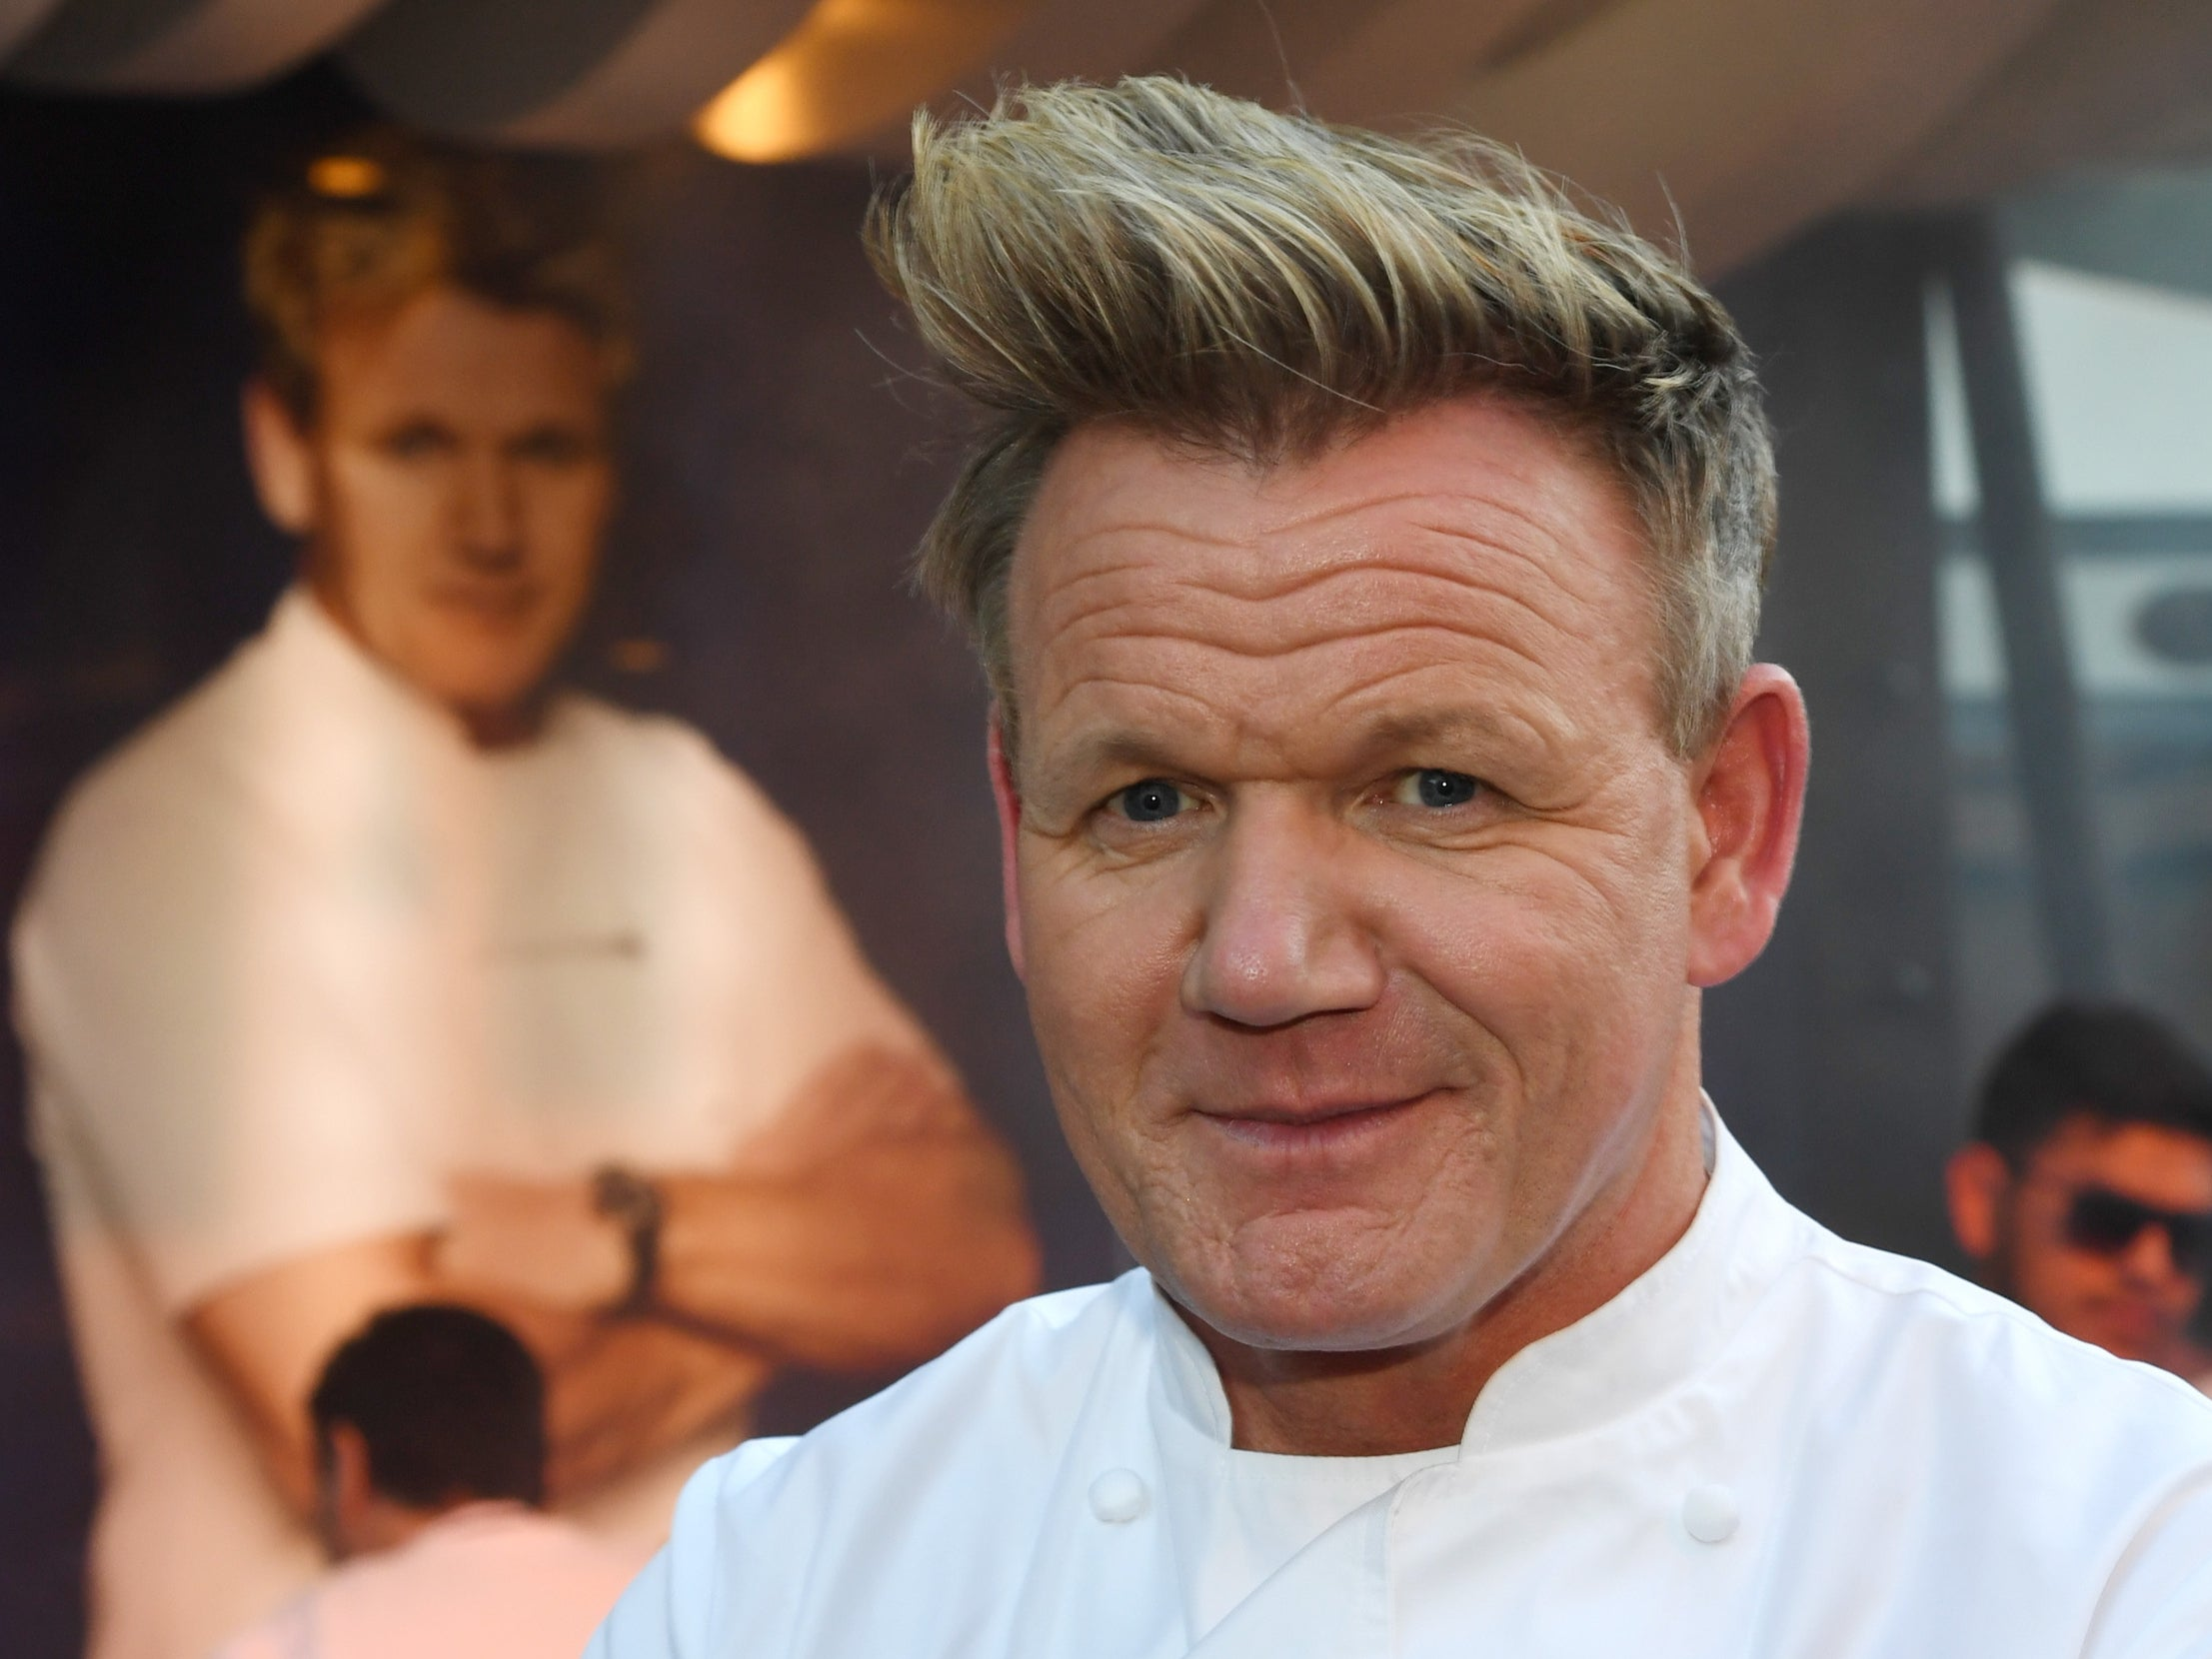 Gordon Ramsay is selling an £80 burger at his new restaurant